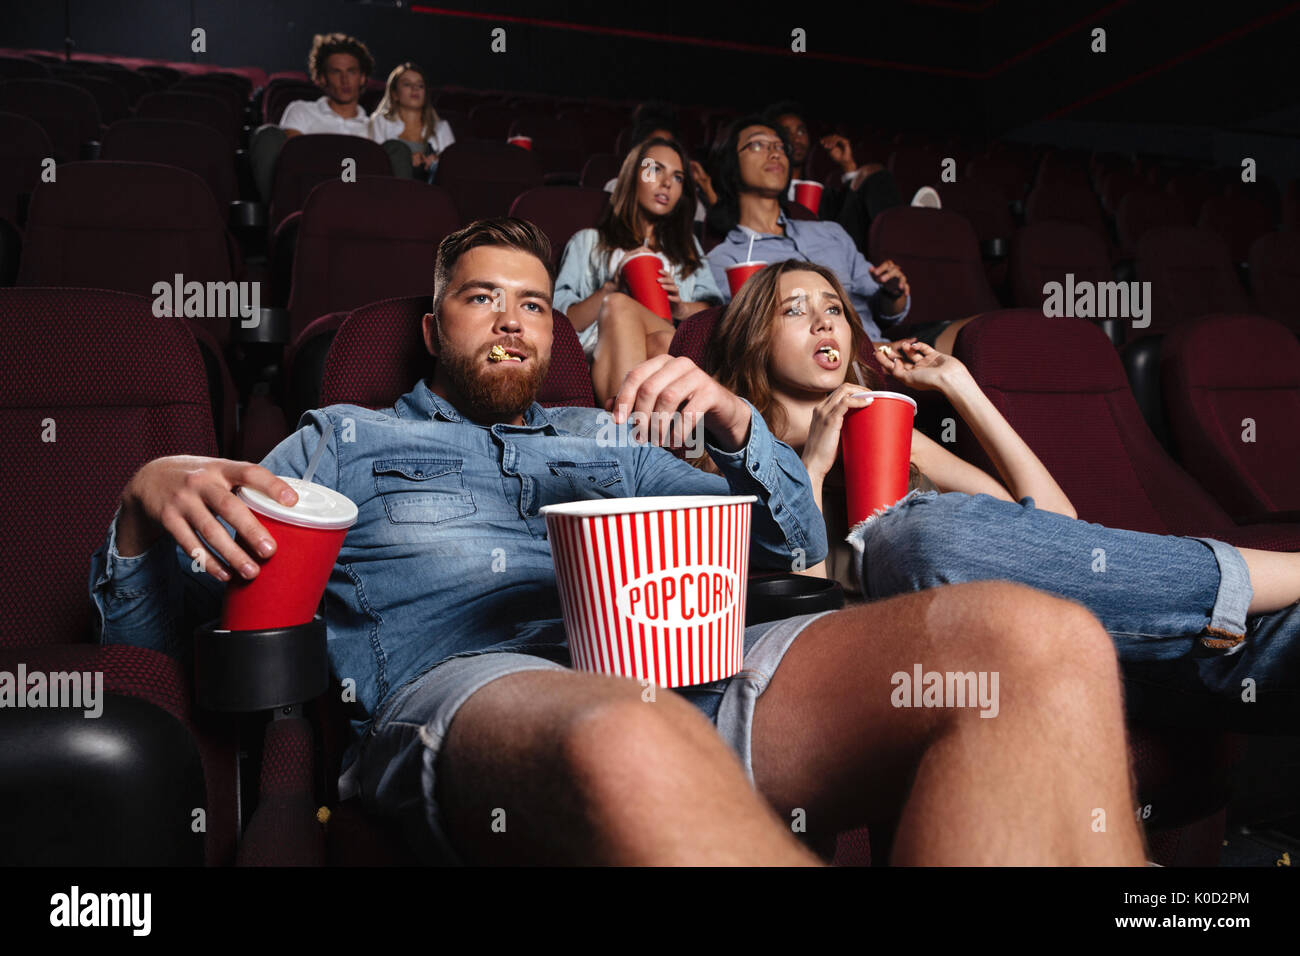 Impolite rude couple sitting in a cinema and chewing loudly while watching a movie - Stock Image